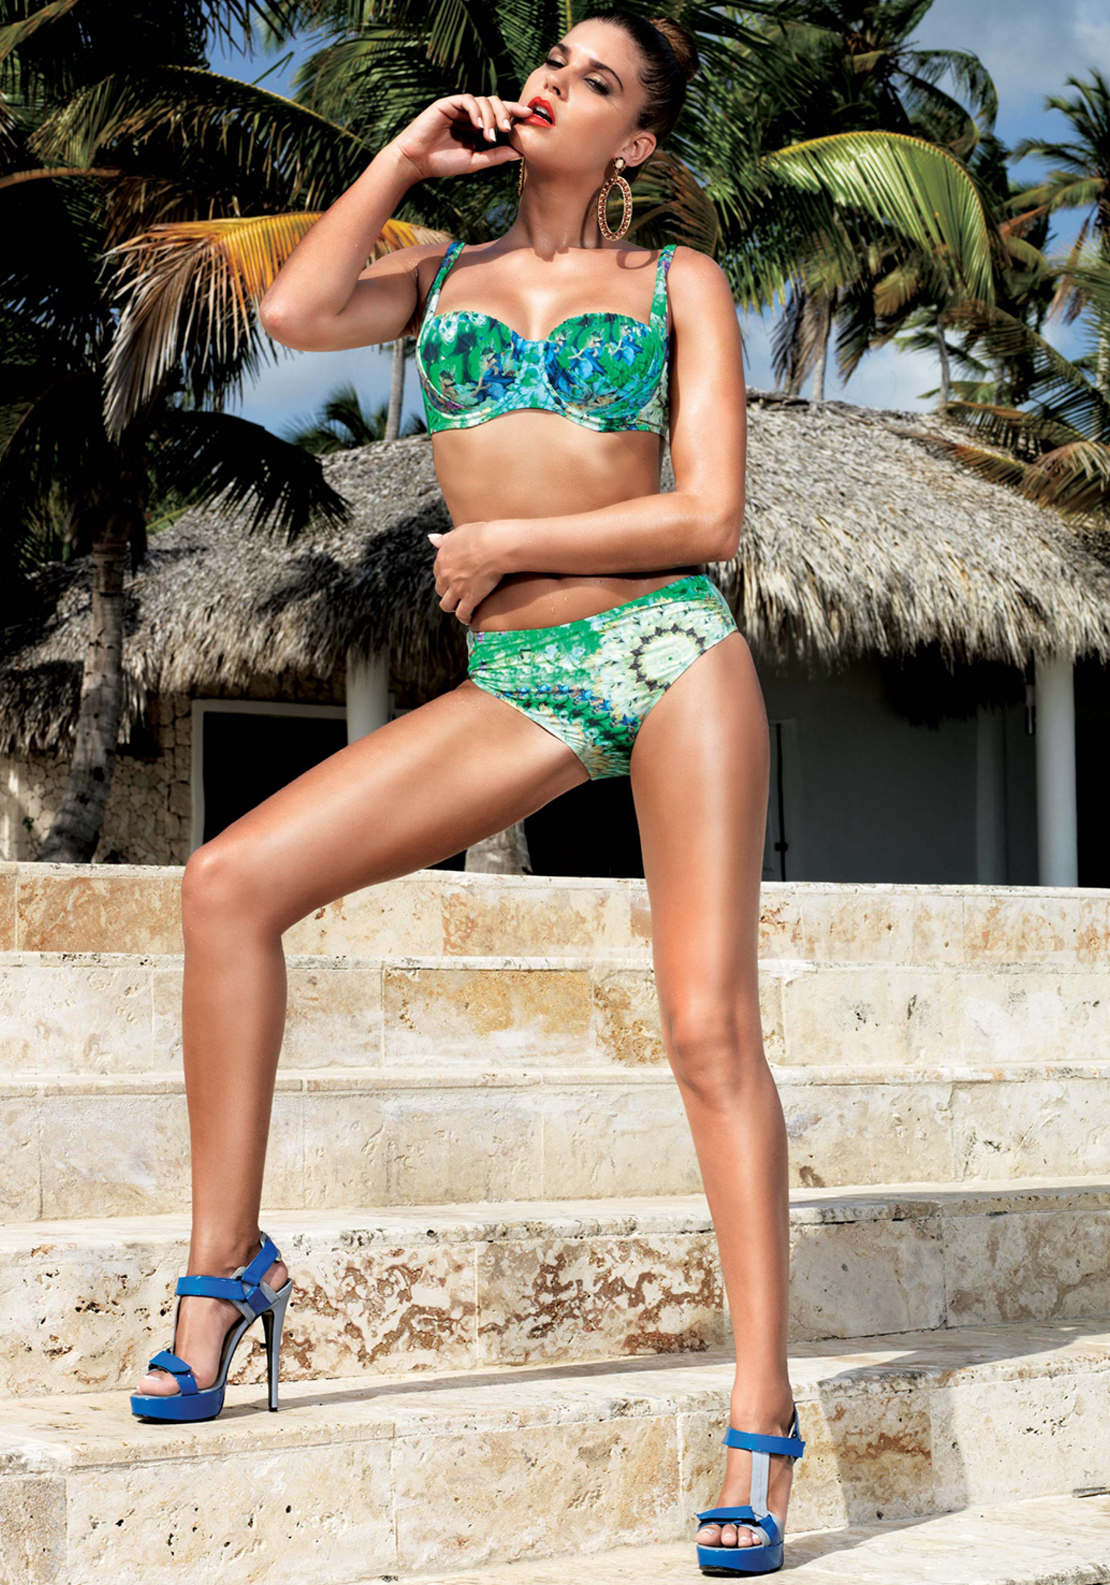 David Swimwear Flower Spring Print Bikini Set, Green Multi